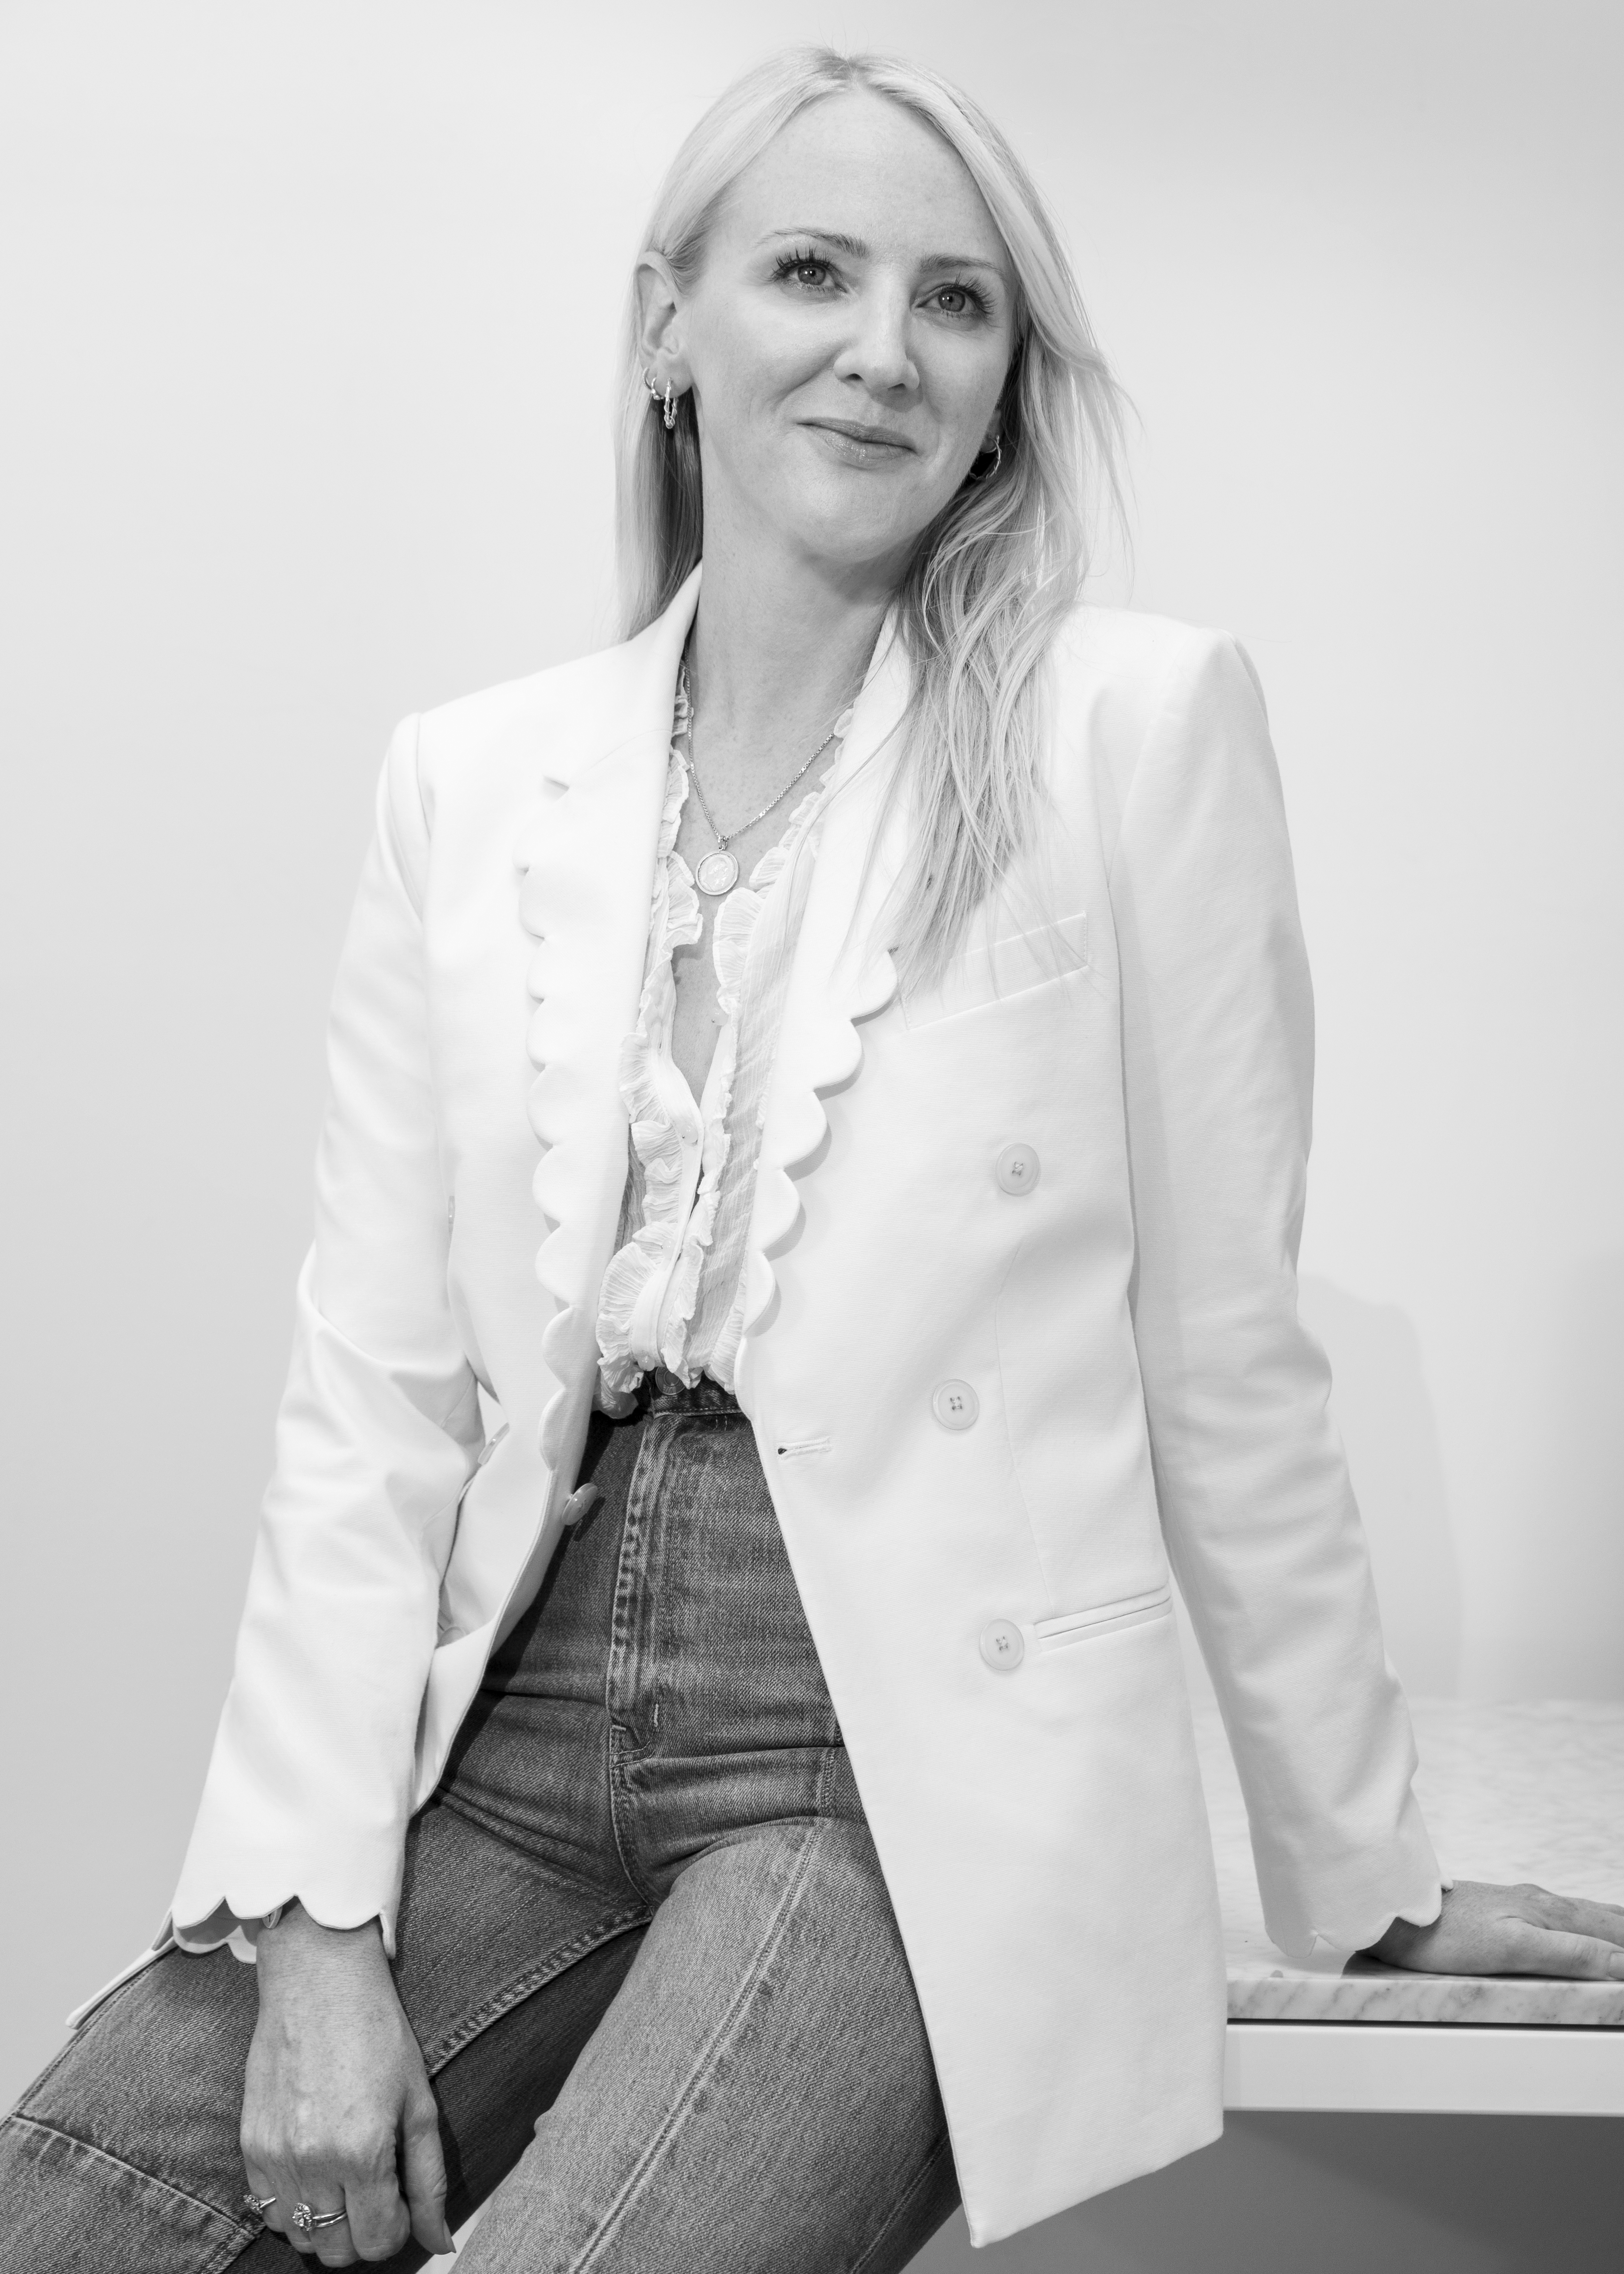 Rebecca Taylor Appoints Emily Craig As New Creative Director Wwd